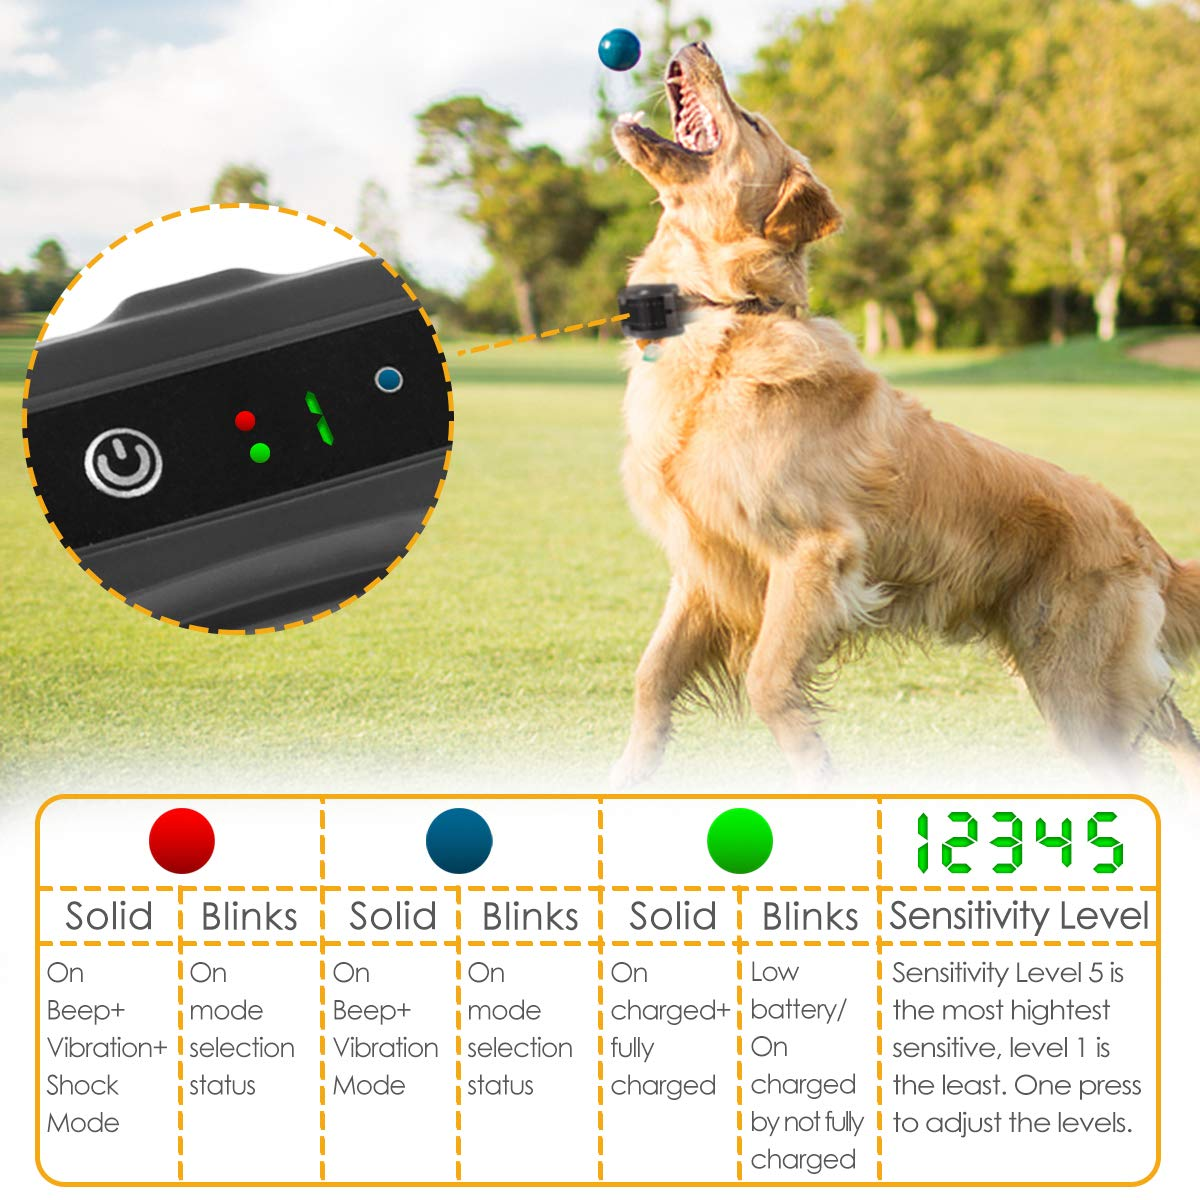 ELenest Bark Collar, 2019 Upgraded Smark Barking Control Device, Adjustable Vibration, Shock Sensitivity Level, Rechargeable Waterproof, Barking Detection for Small Large Dog, No Bark Collar by ELenest (Image #4)